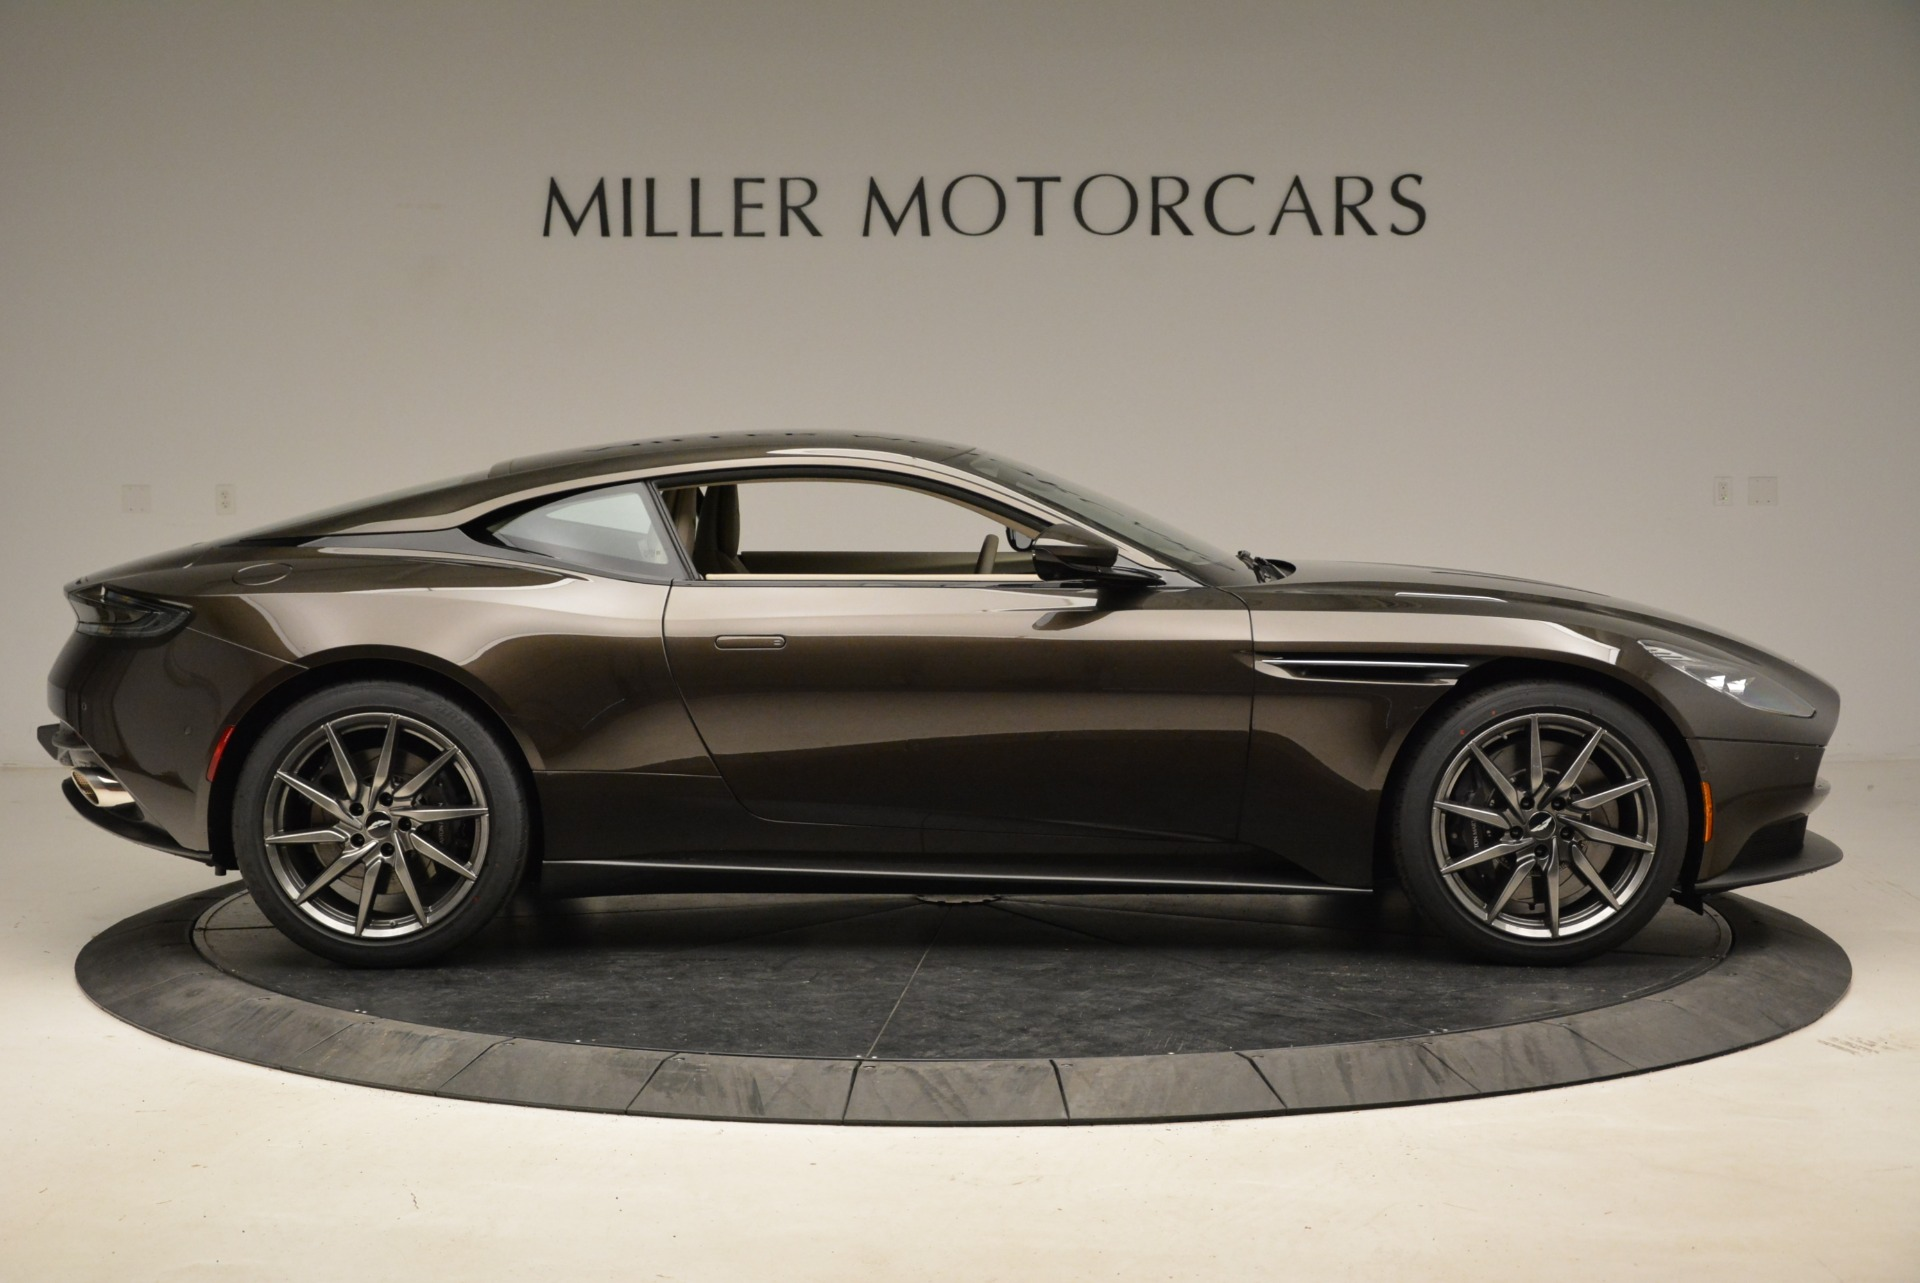 New 2018 Aston Martin DB11 V12 For Sale In Westport, CT 1904_p9